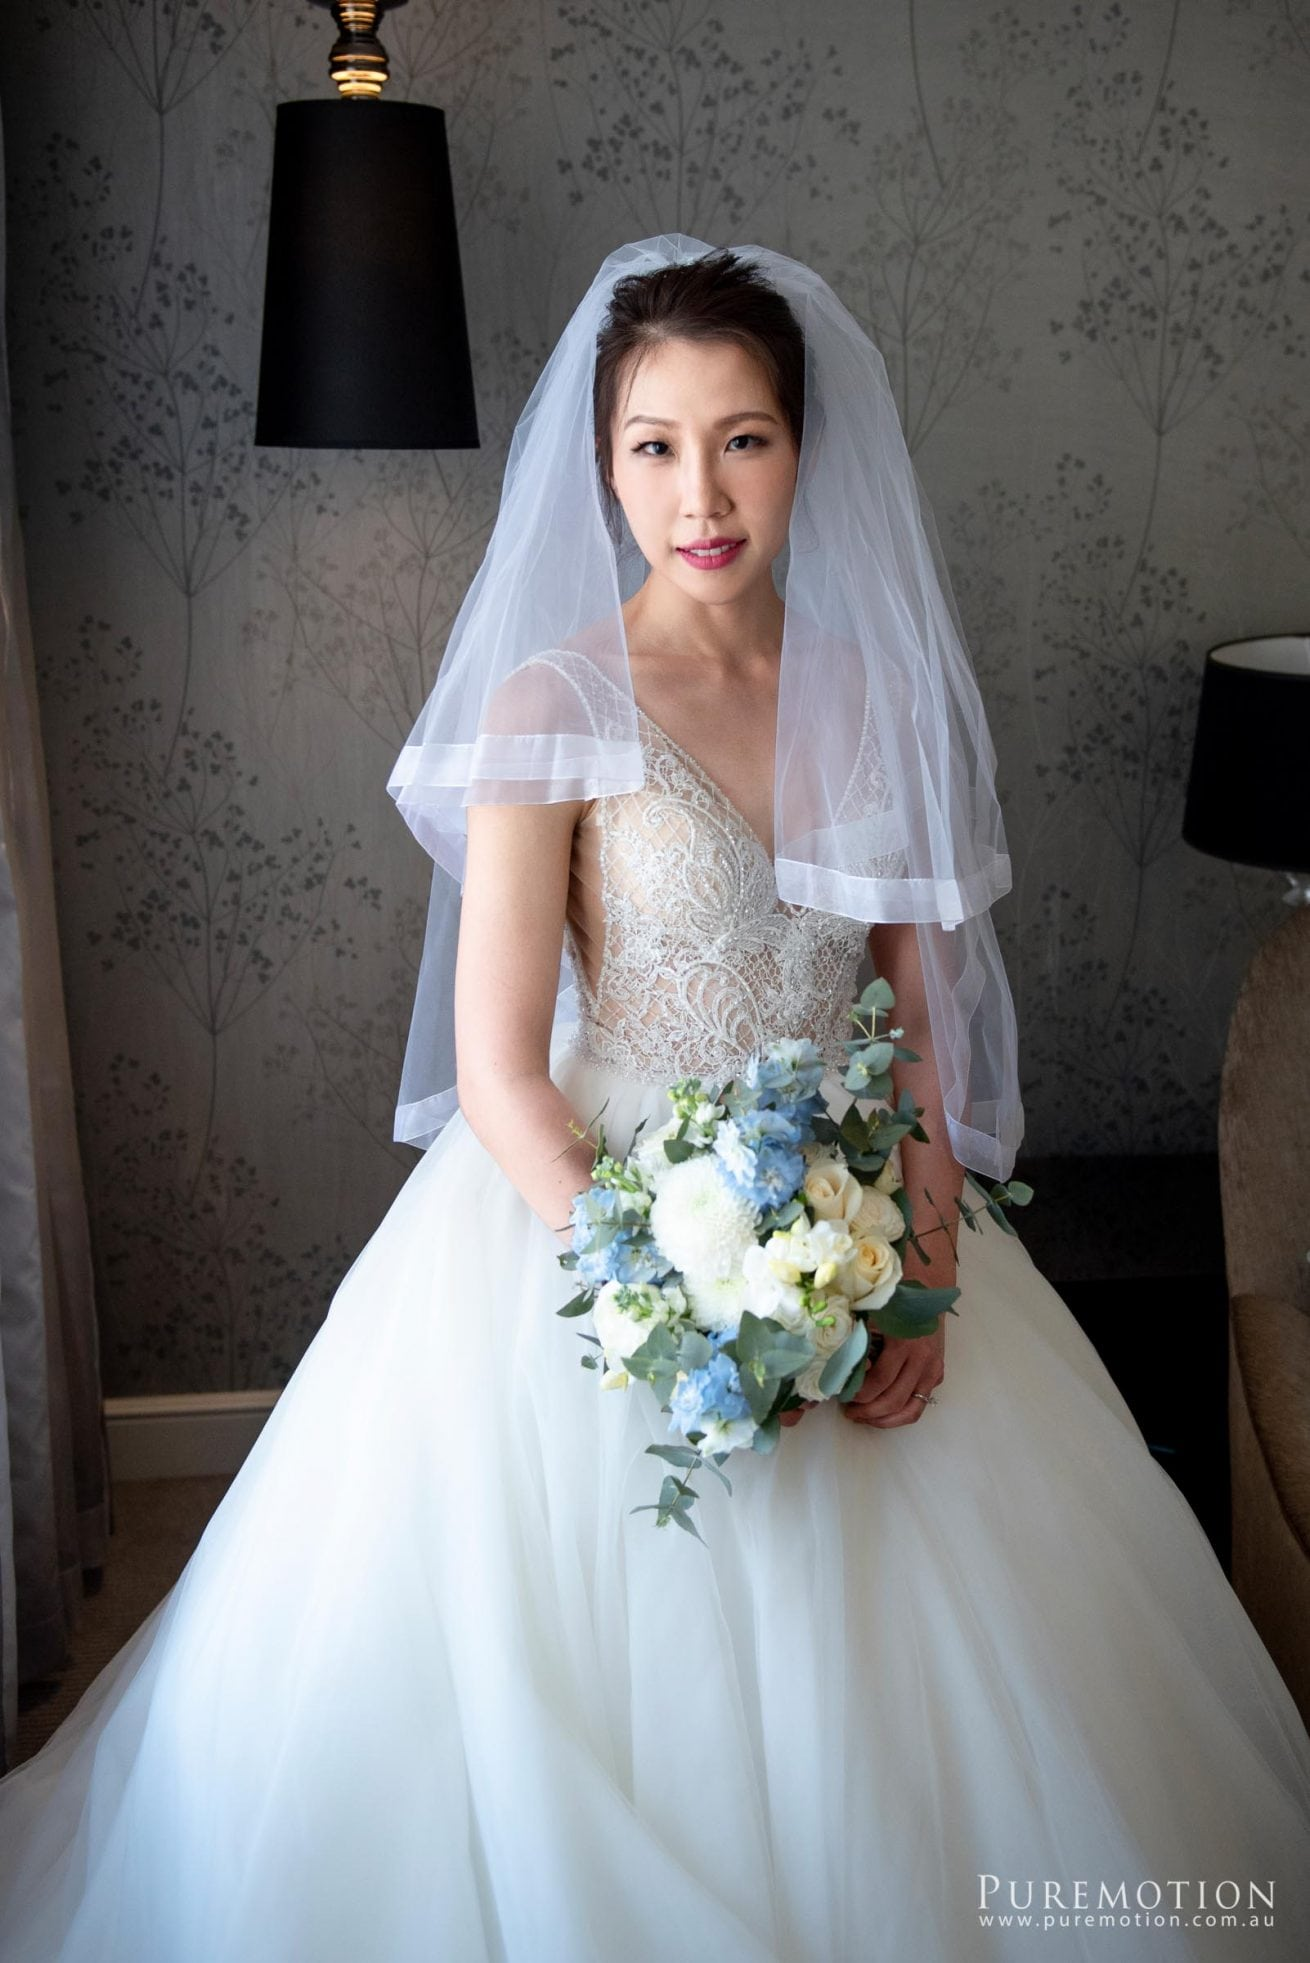 180818 Puremotion Wedding Photography Brisbane Alex Huang MichelleConan Room 360_Site-0044